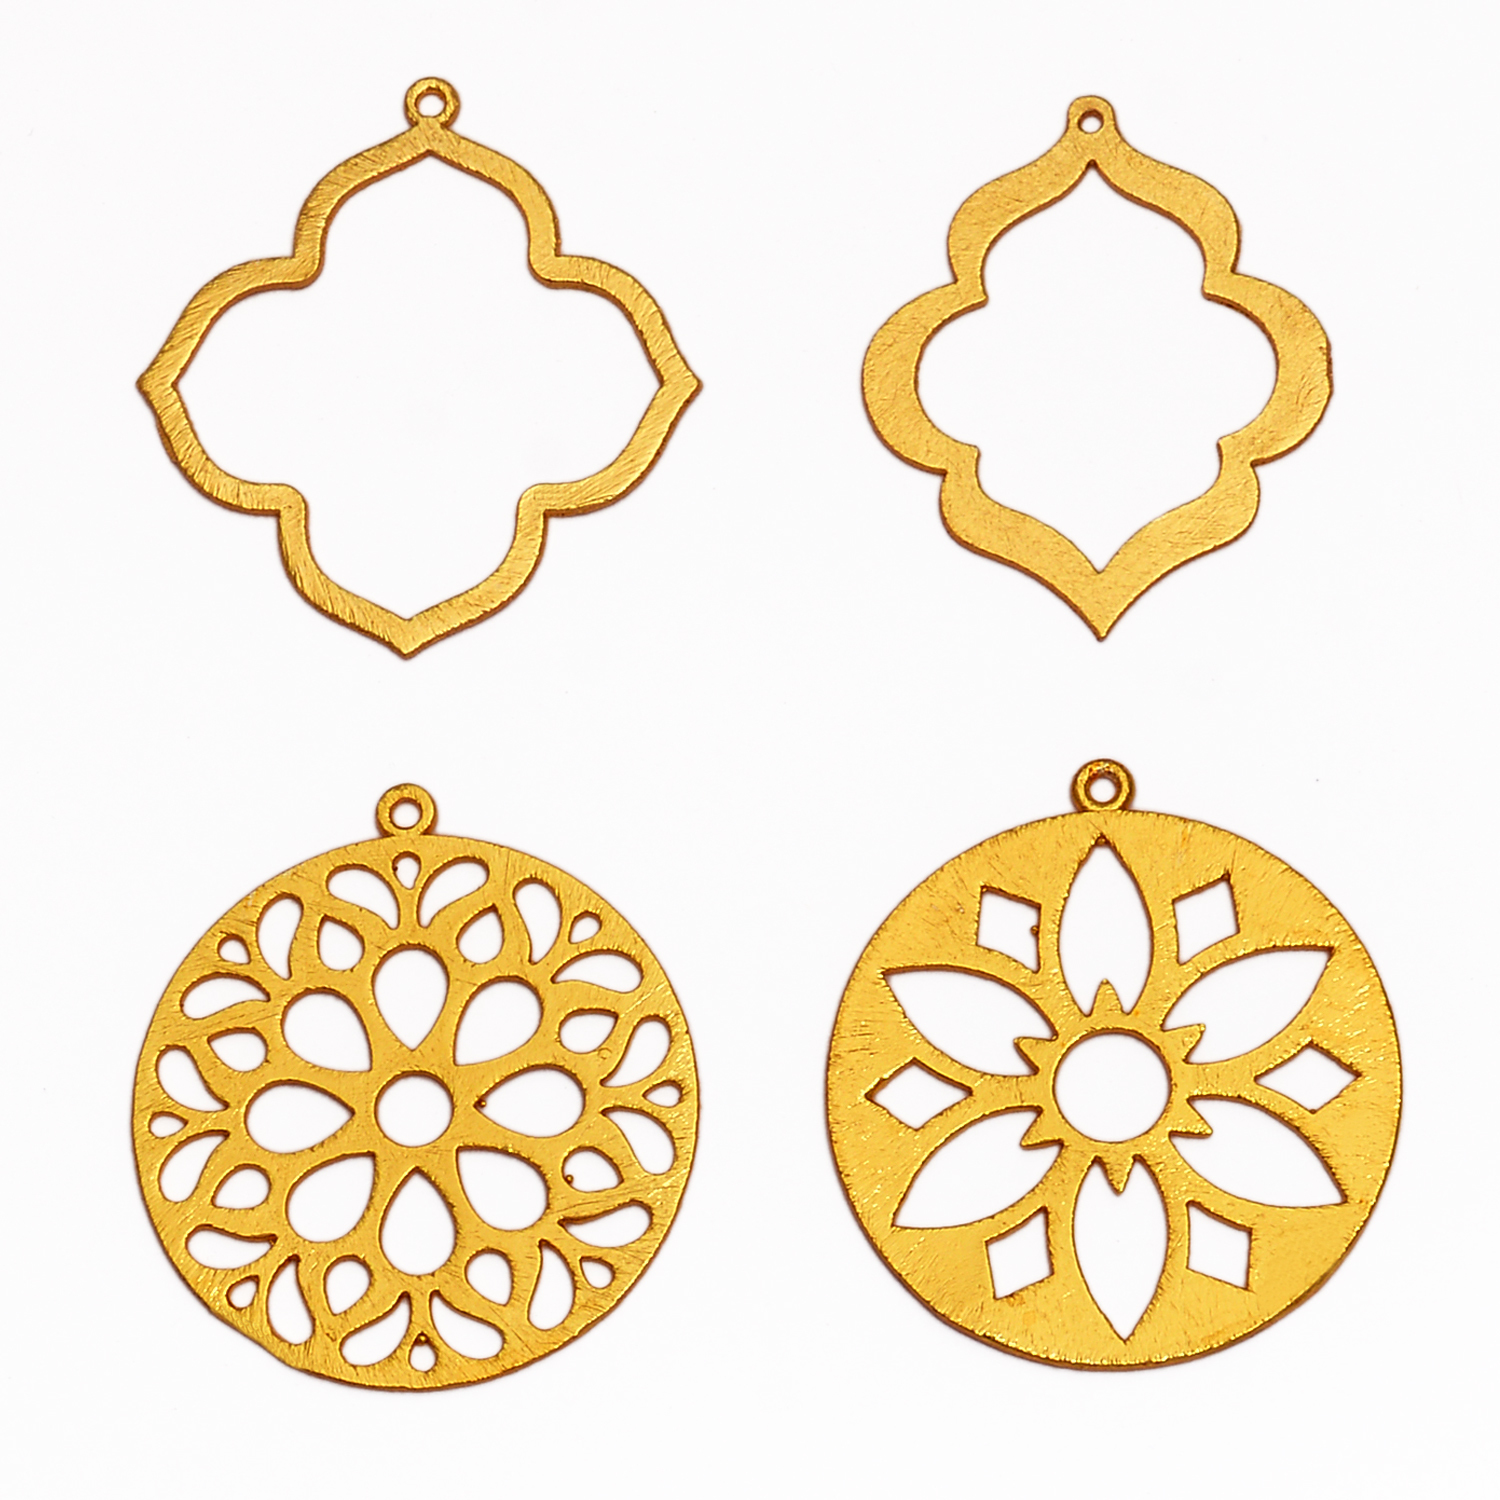 24k Gold Plated Brushed Wavy Flower Blossom Shaped Charms